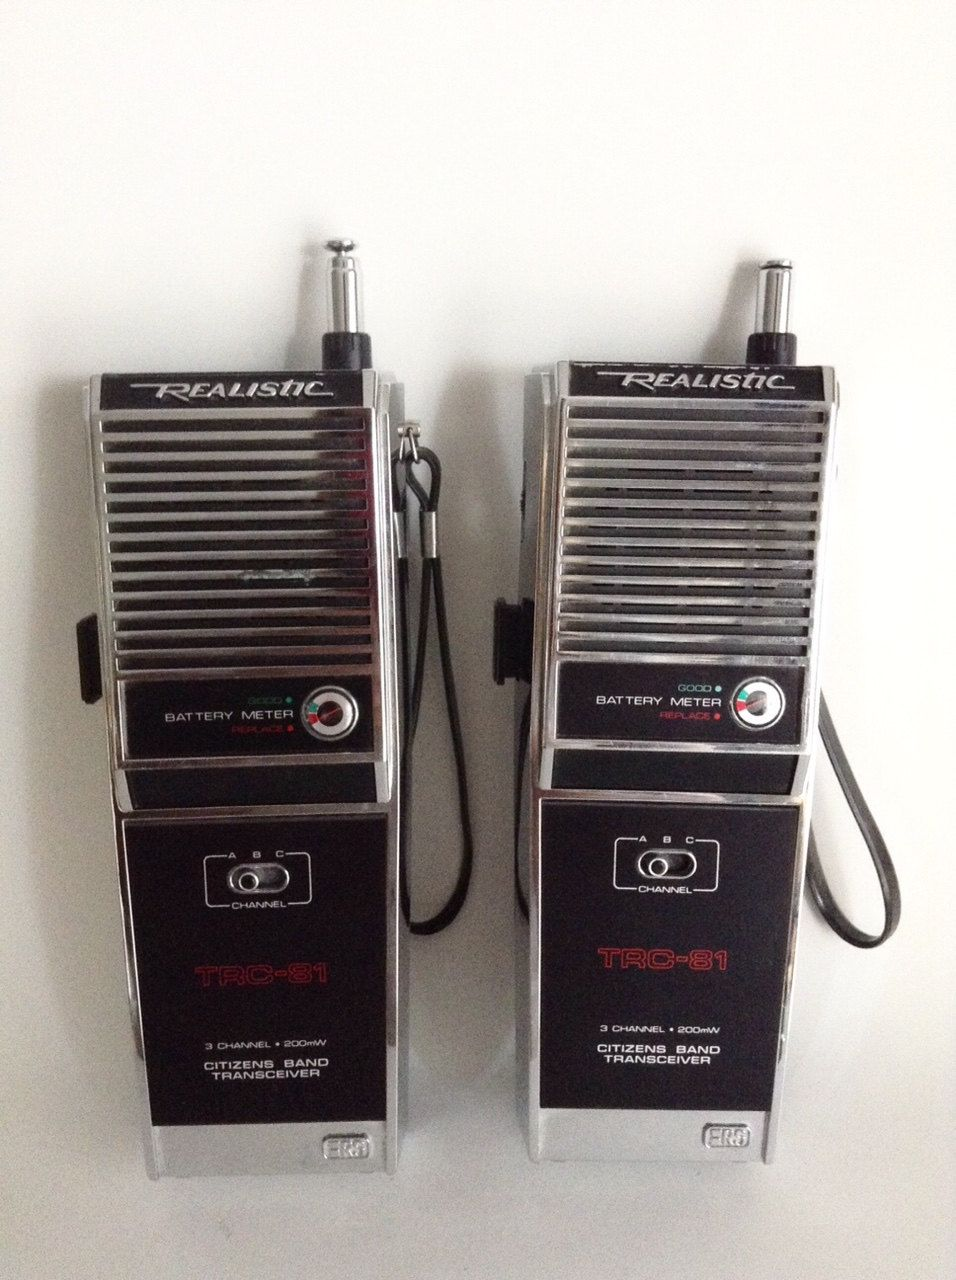 Vintage Walkie Talkies By Realistic Old Citizens Band Transceiver